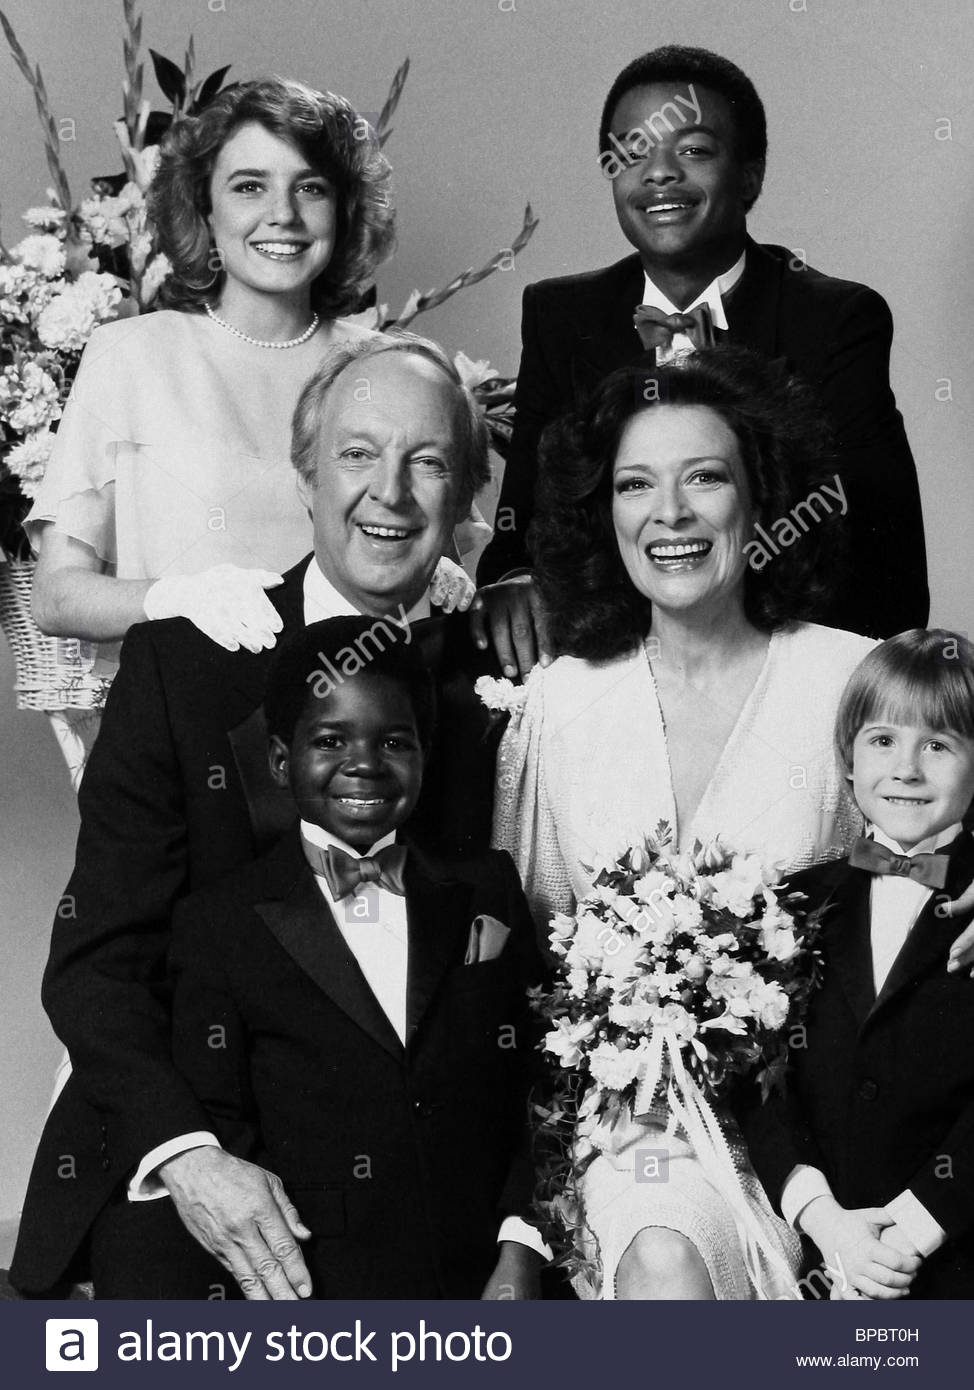 conrad bain movies and tv shows